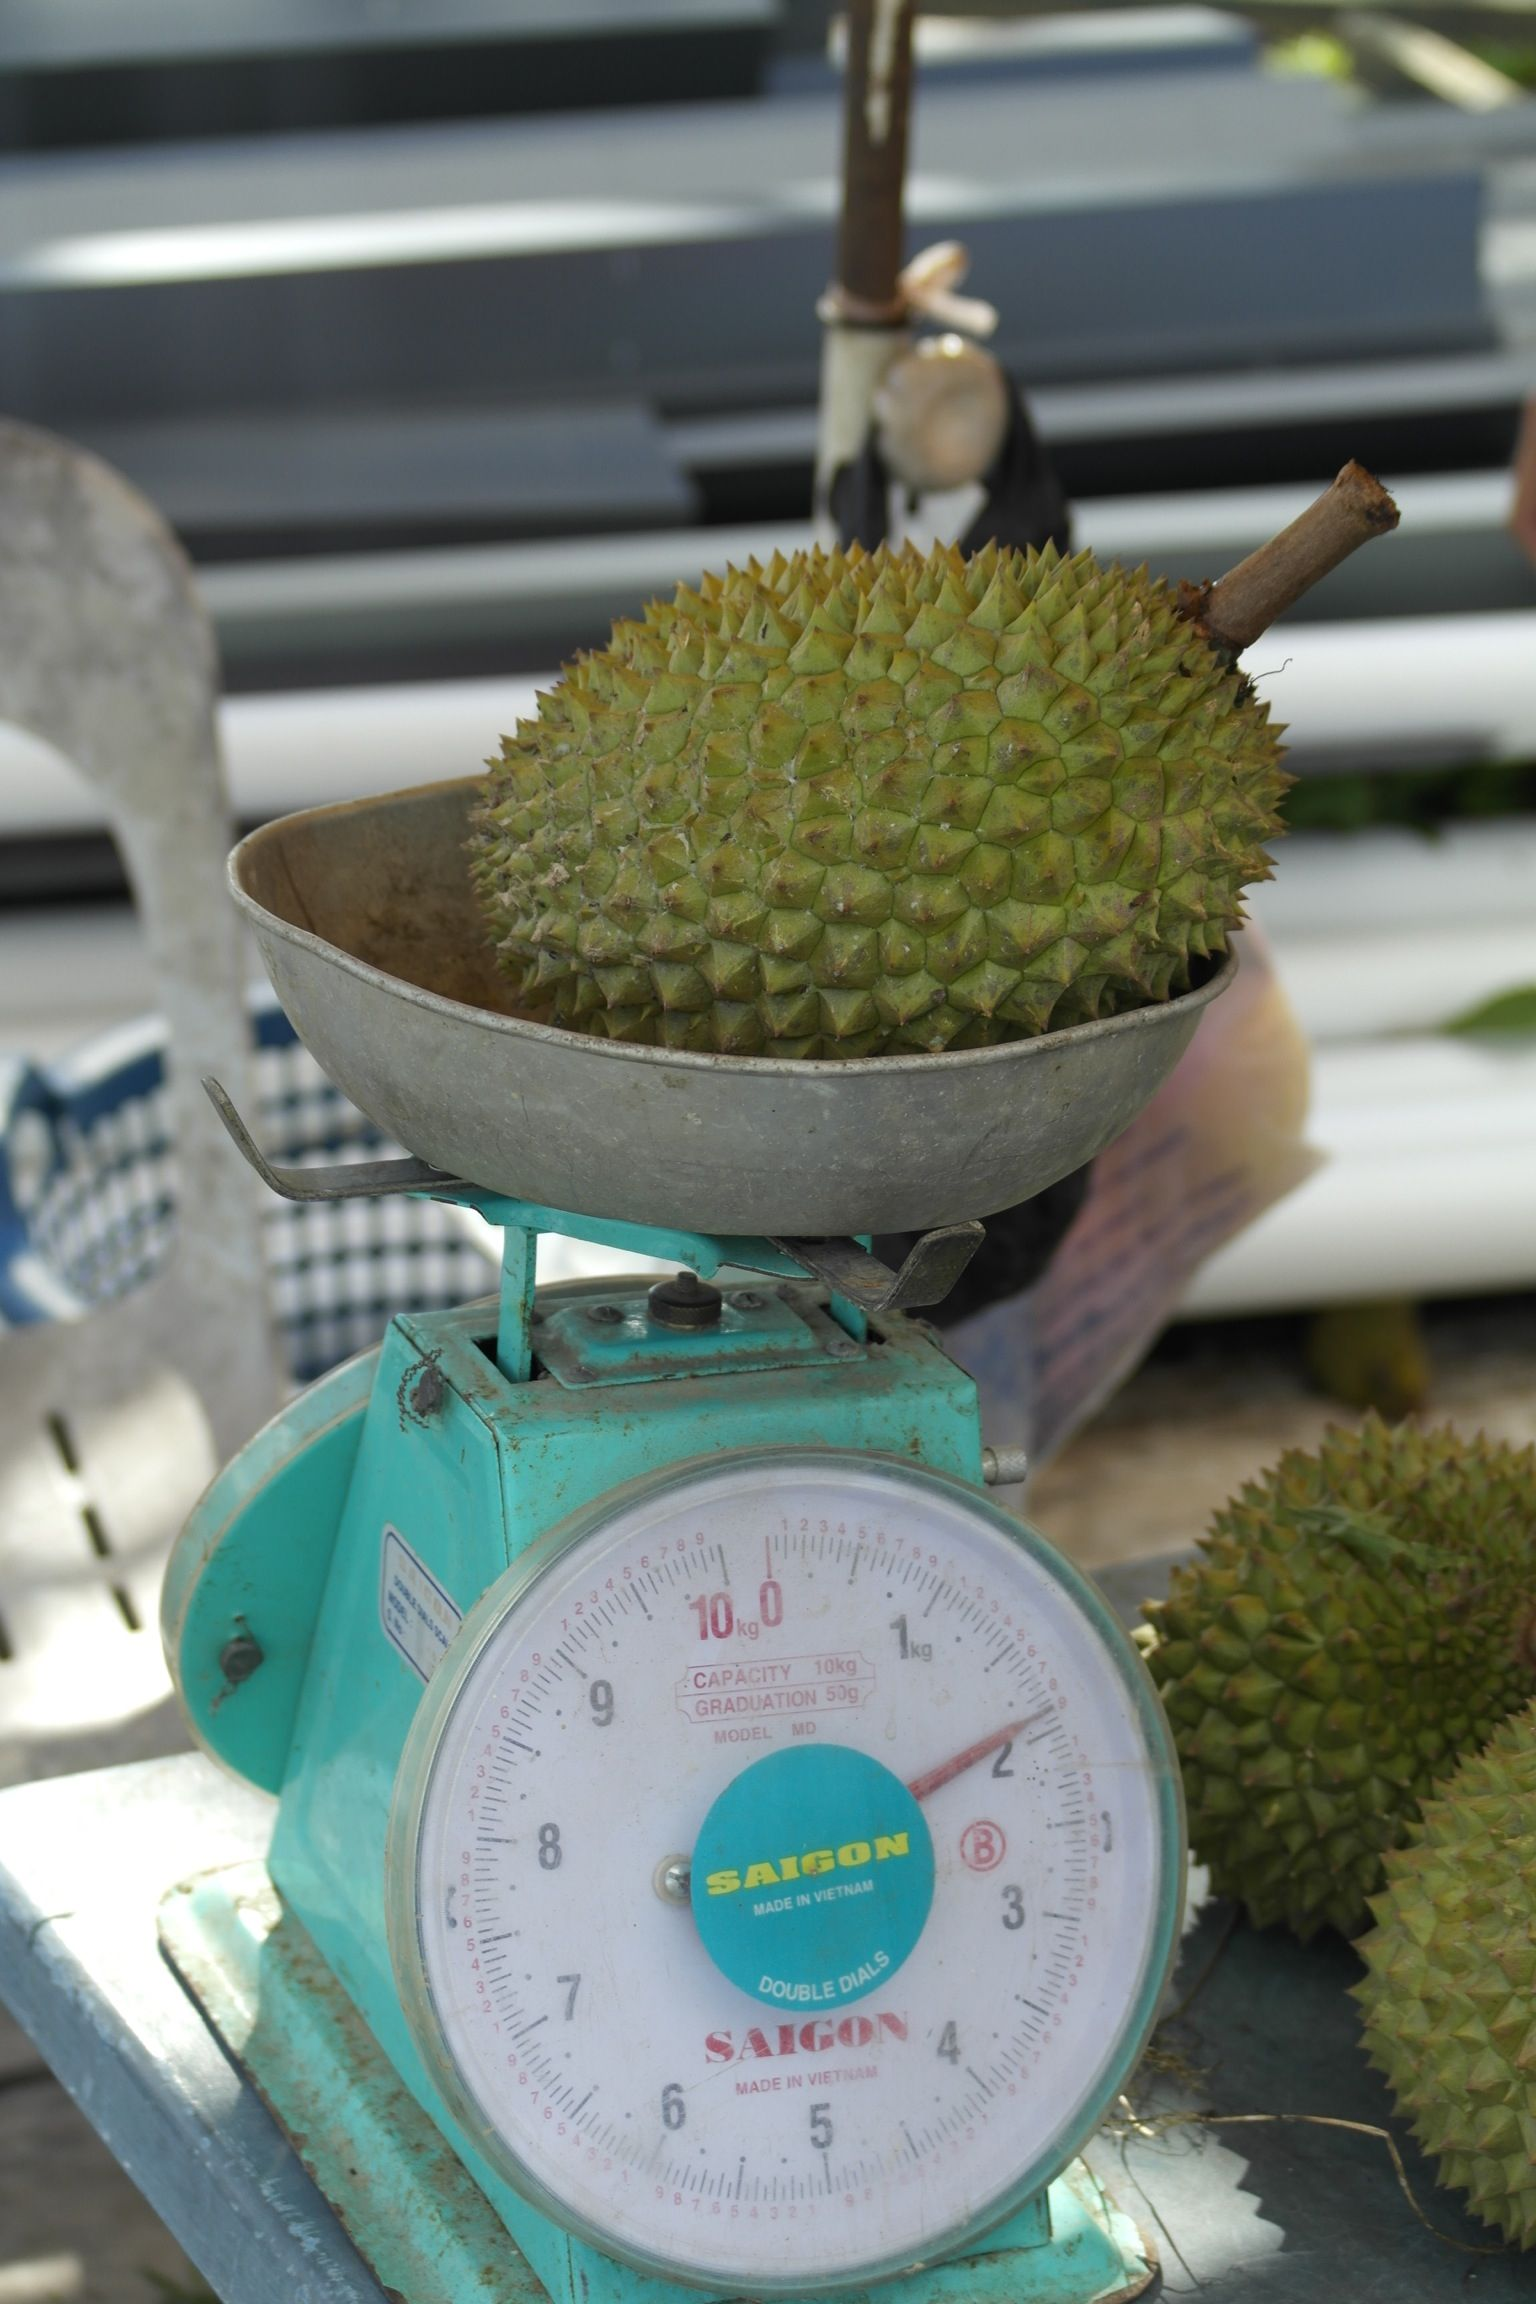 Durian fruit - smells disgusting, tastes worse!